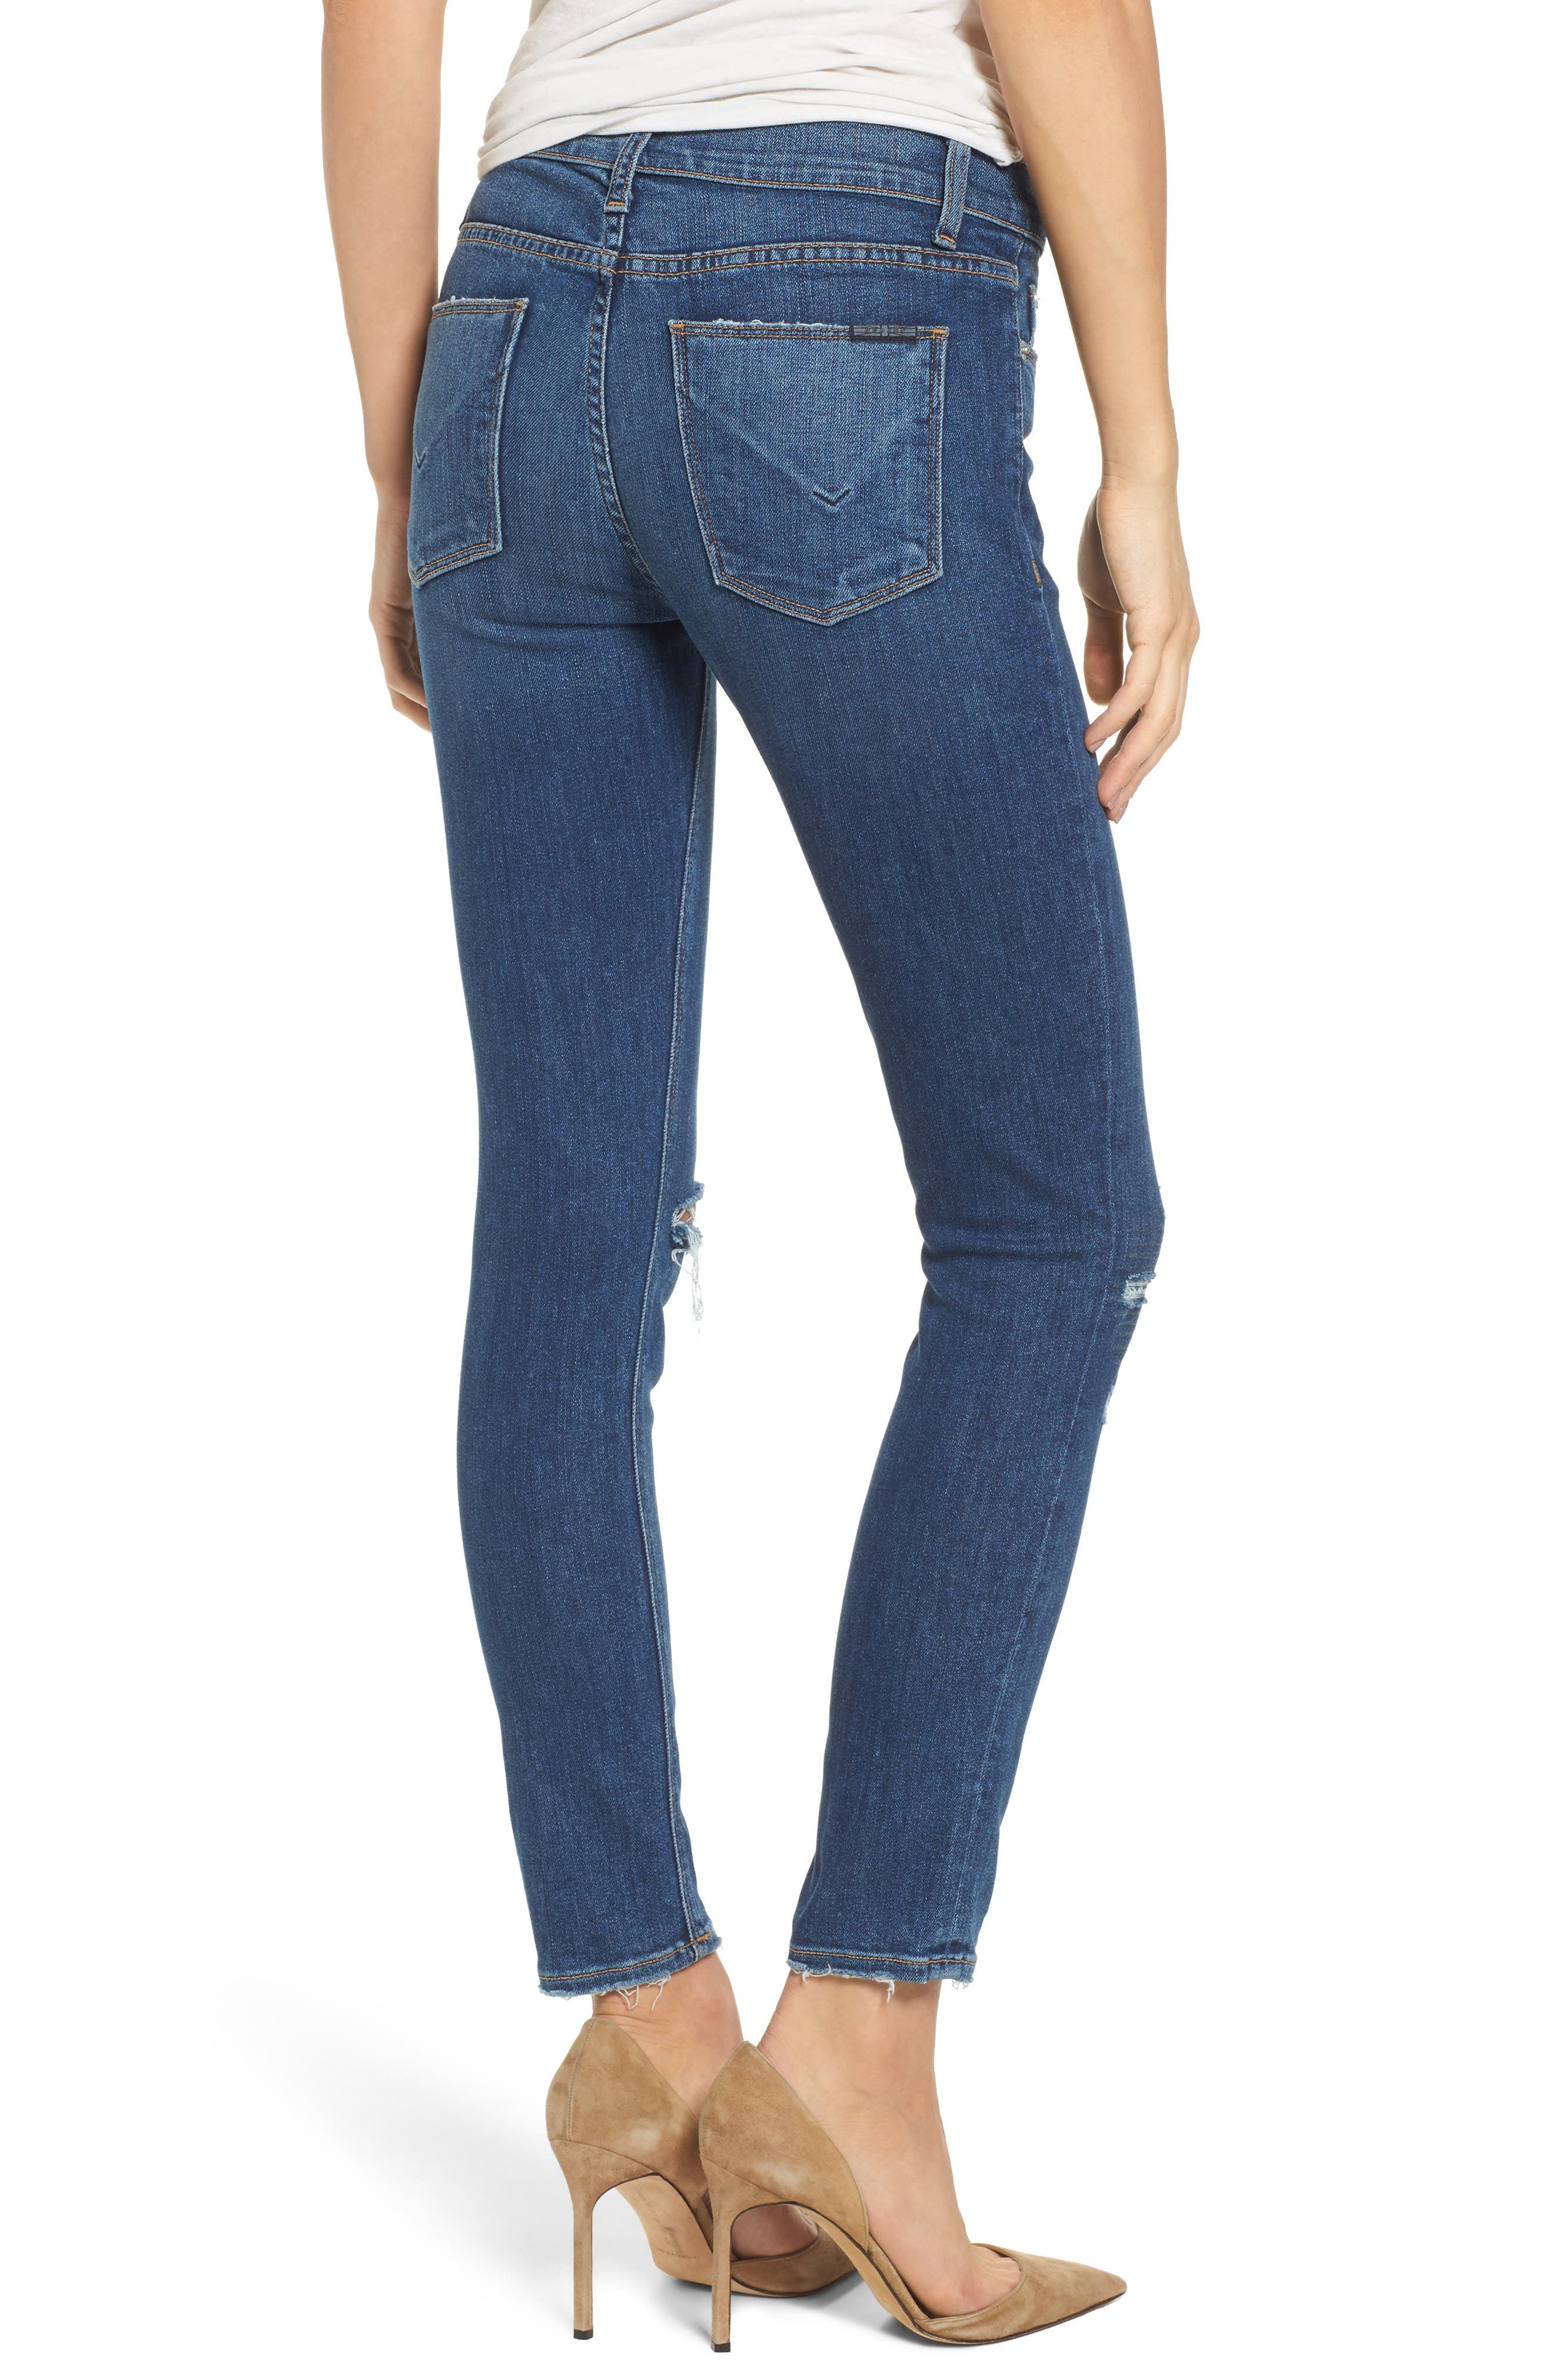 Tally Ankle Skinny Jeans,                             Alternate thumbnail 2, color,                             423